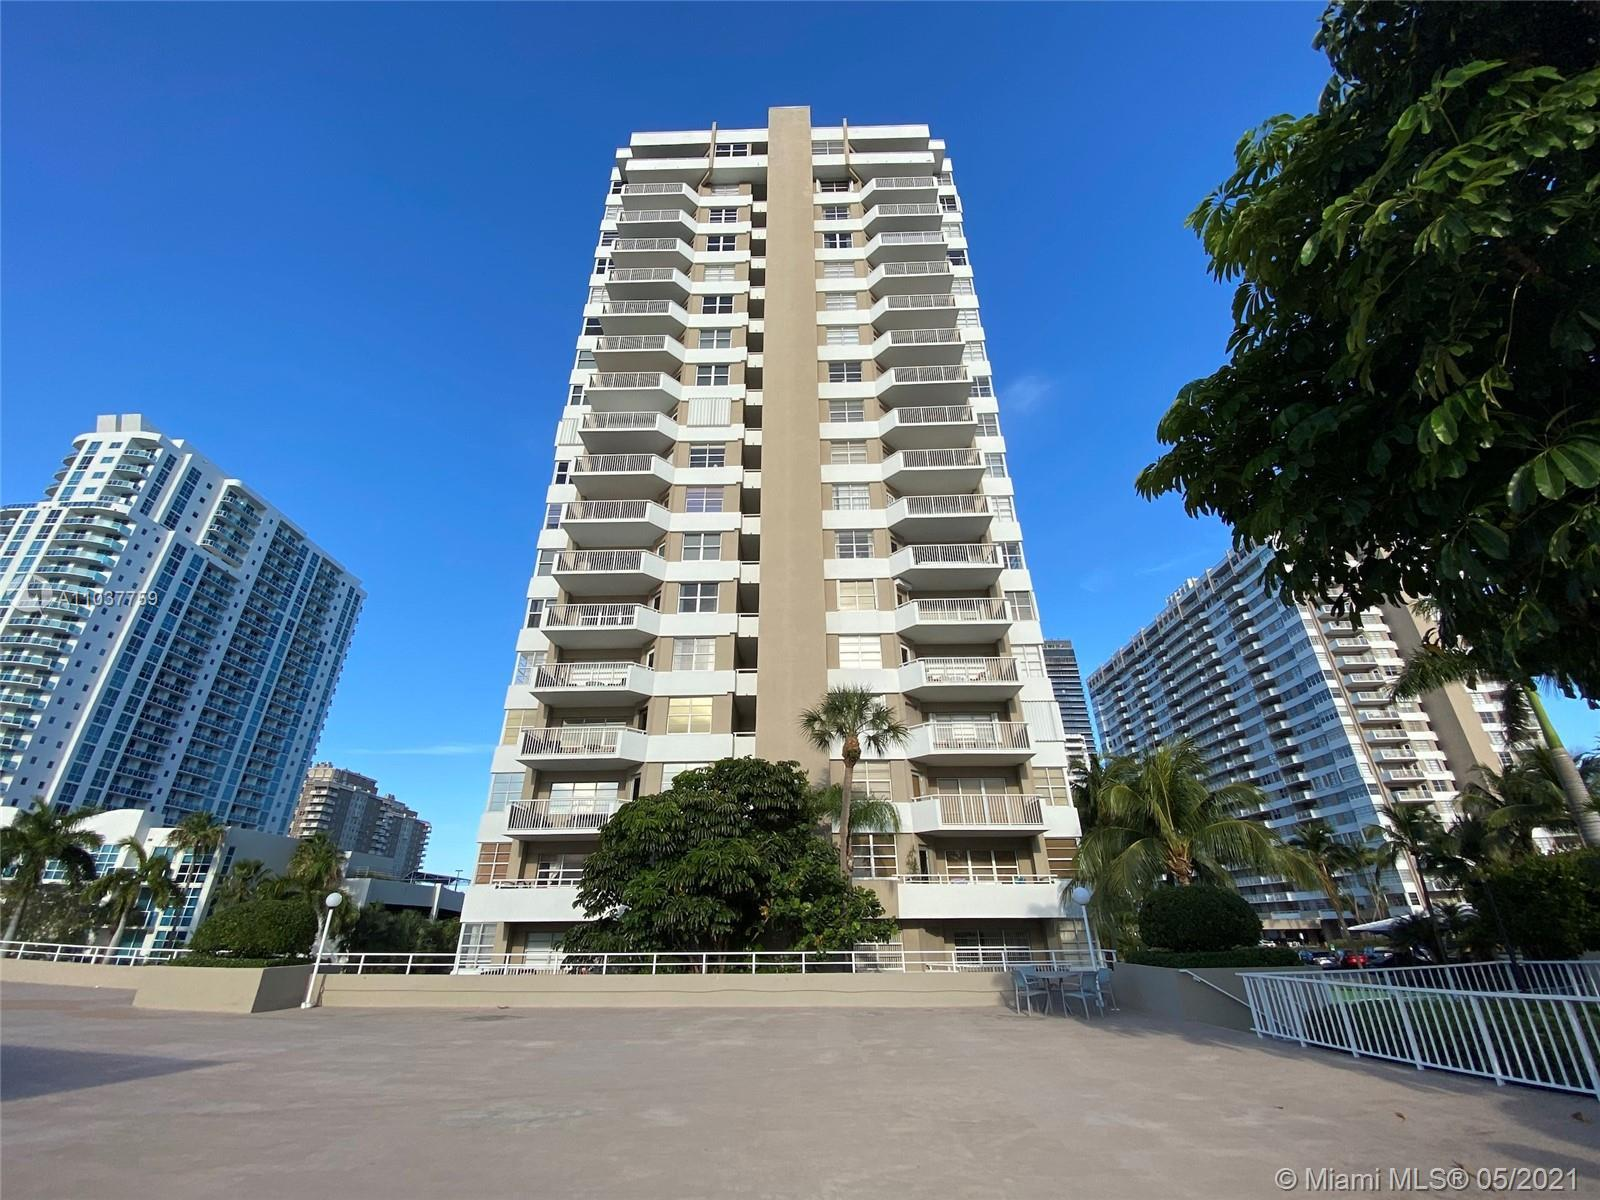 For Sale 1bed/1bath condo in The Hemispheres in Hallandale Beach. Great location with lots of amenit